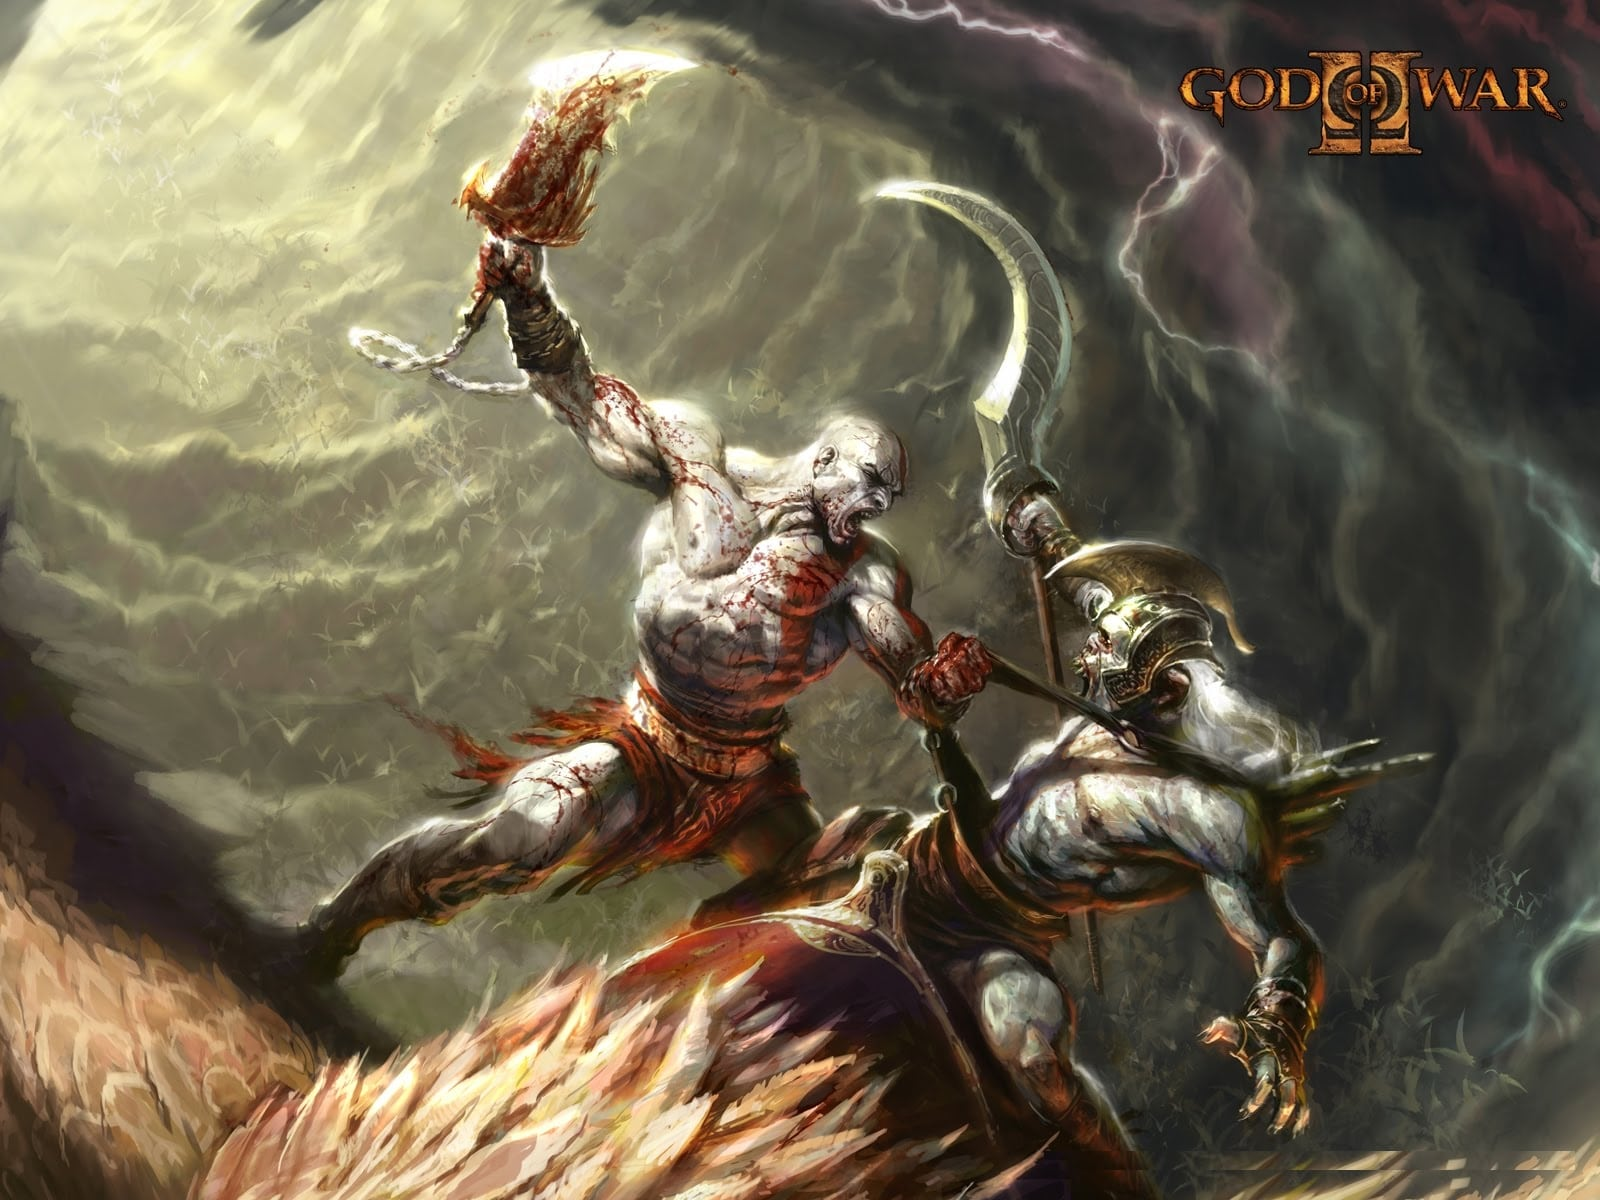 God Of War 2 Pictures